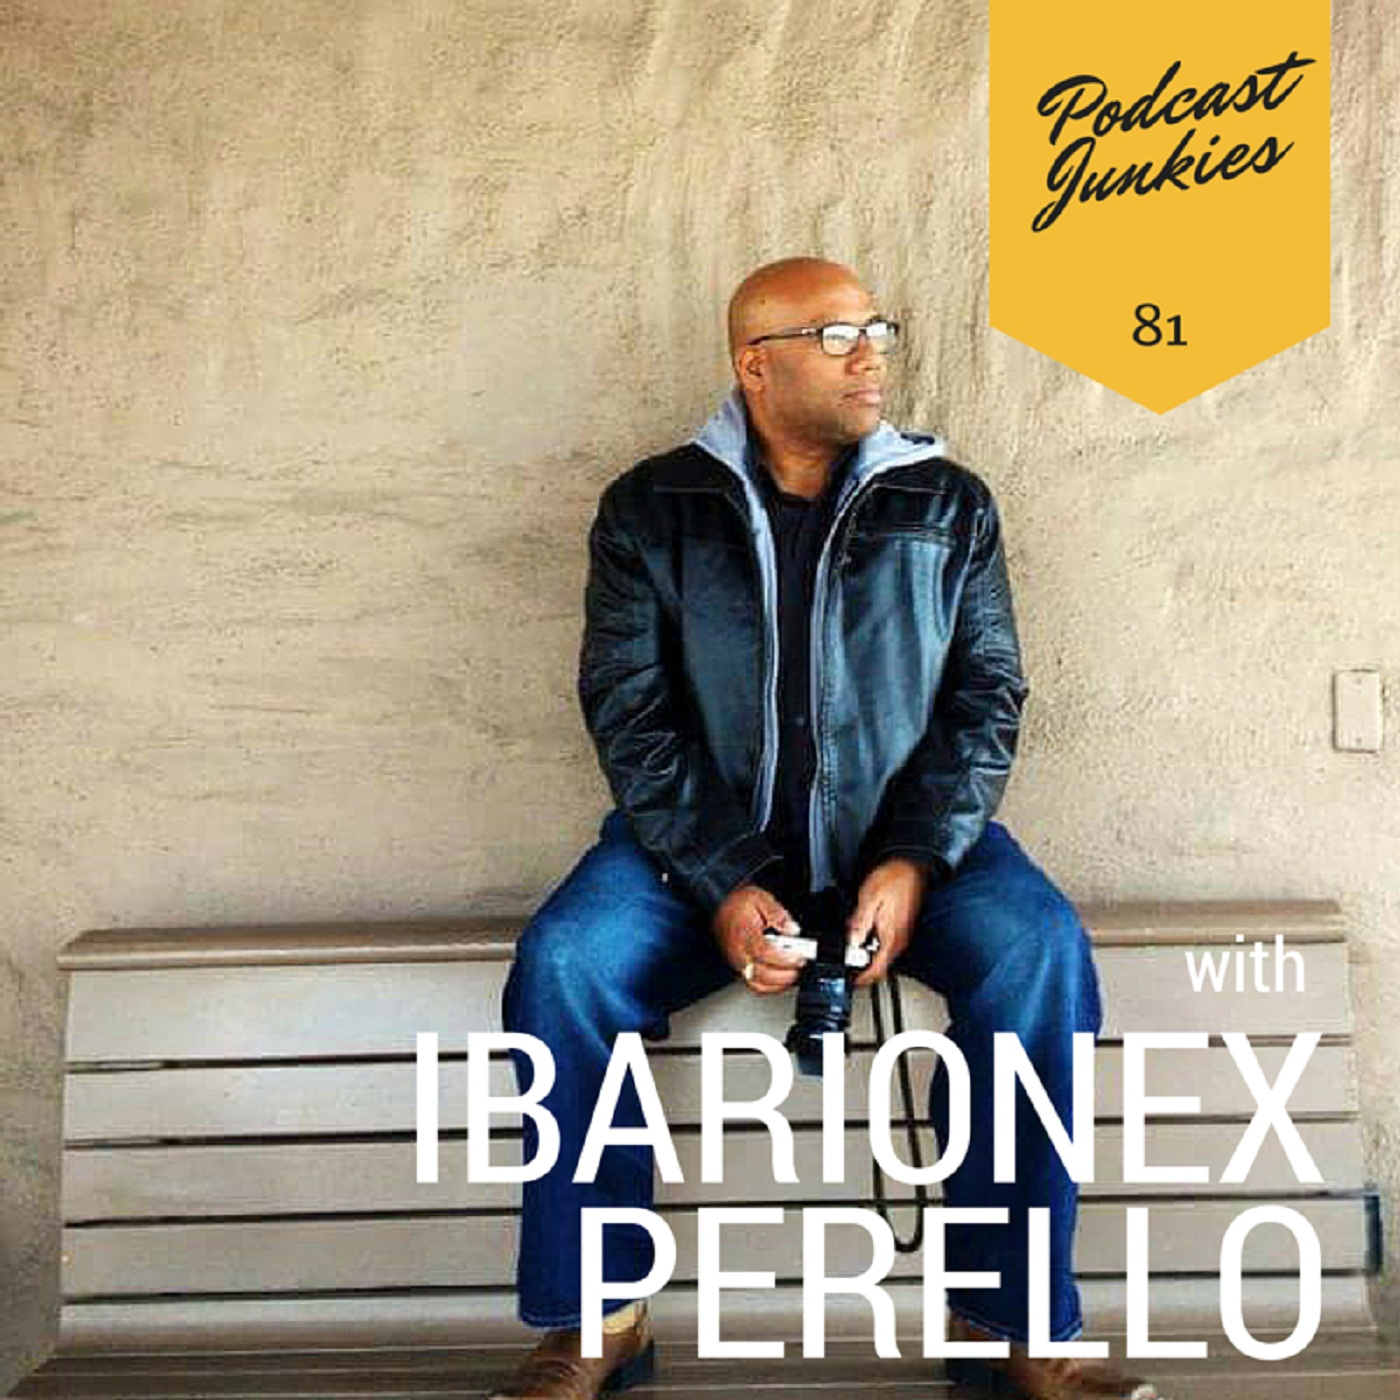 081 Ibarionex Perello | Really Listen to Your Guest and Follow Up